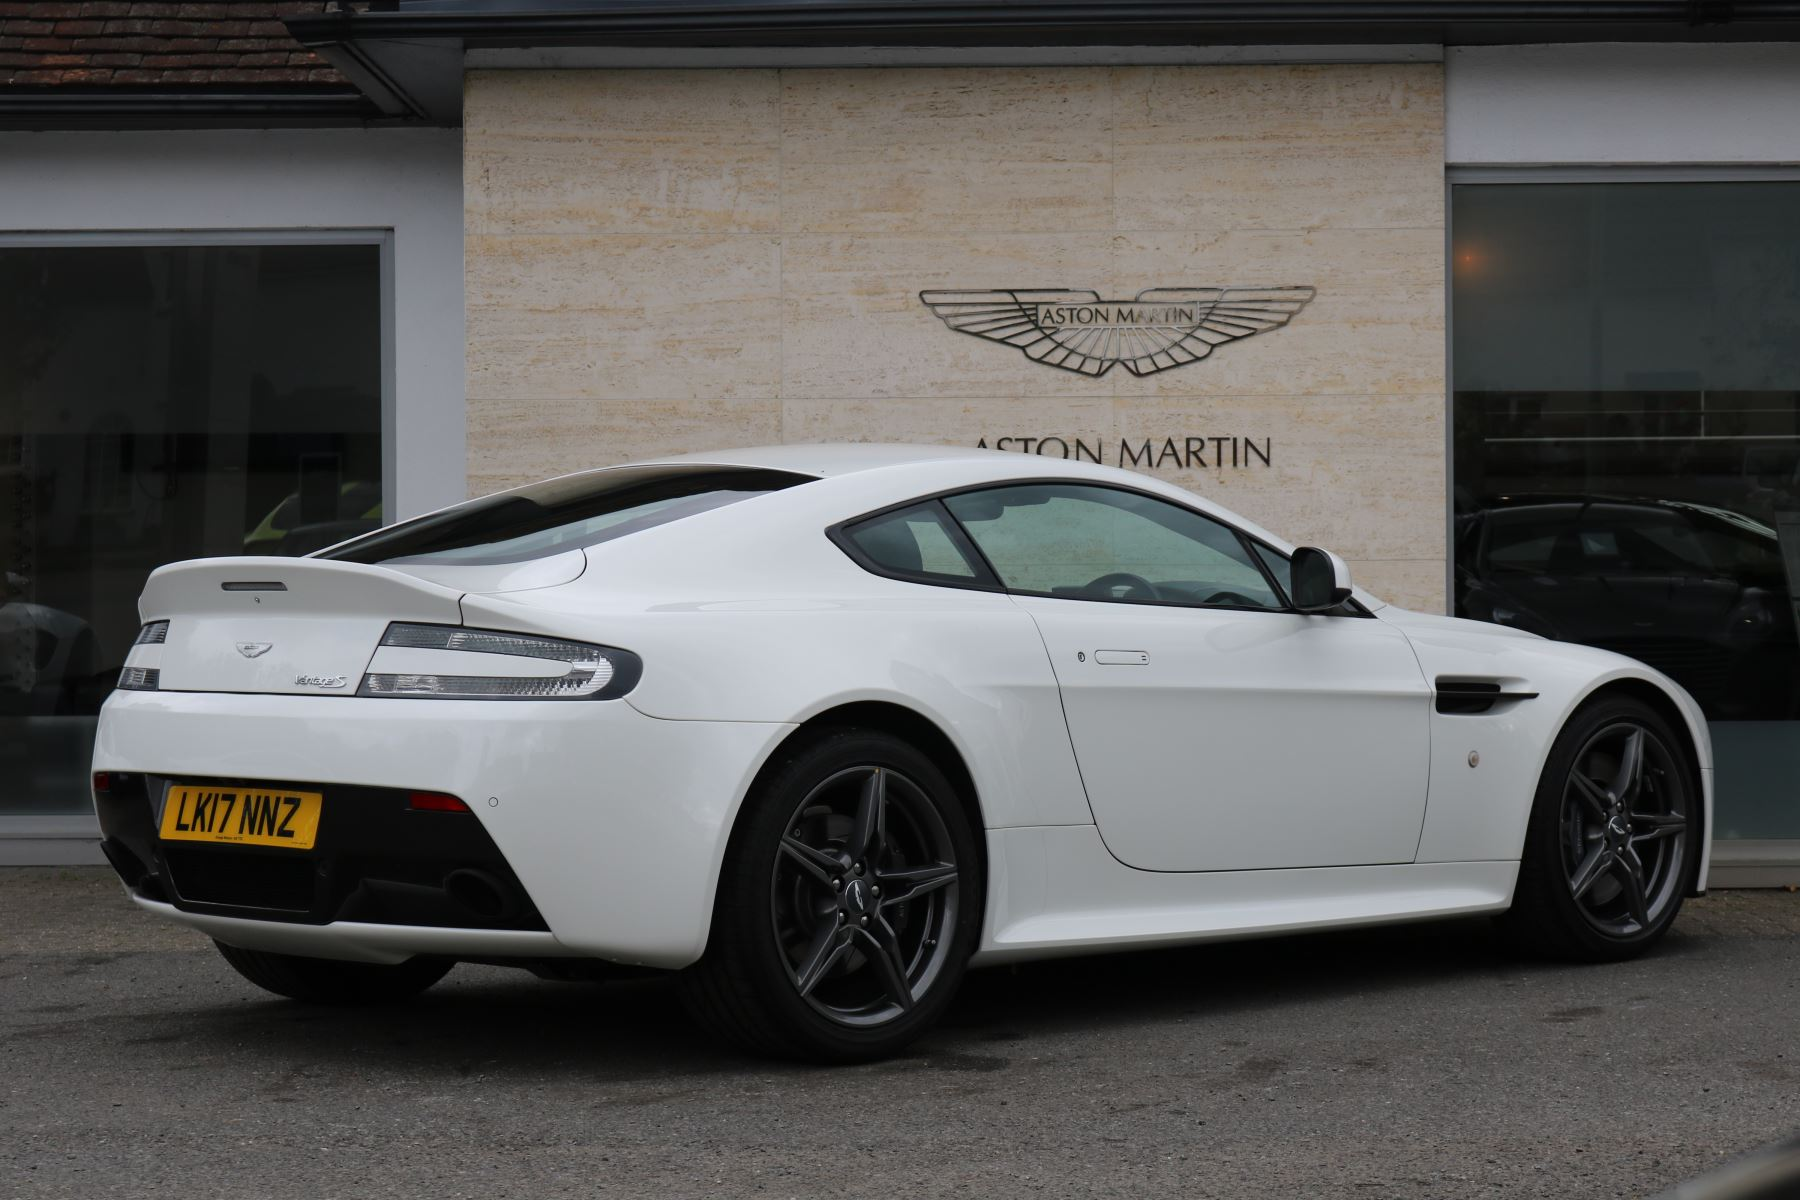 Aston Martin V Vantage S Coupe S Dr Door Coupe At - Aston martin vantage s